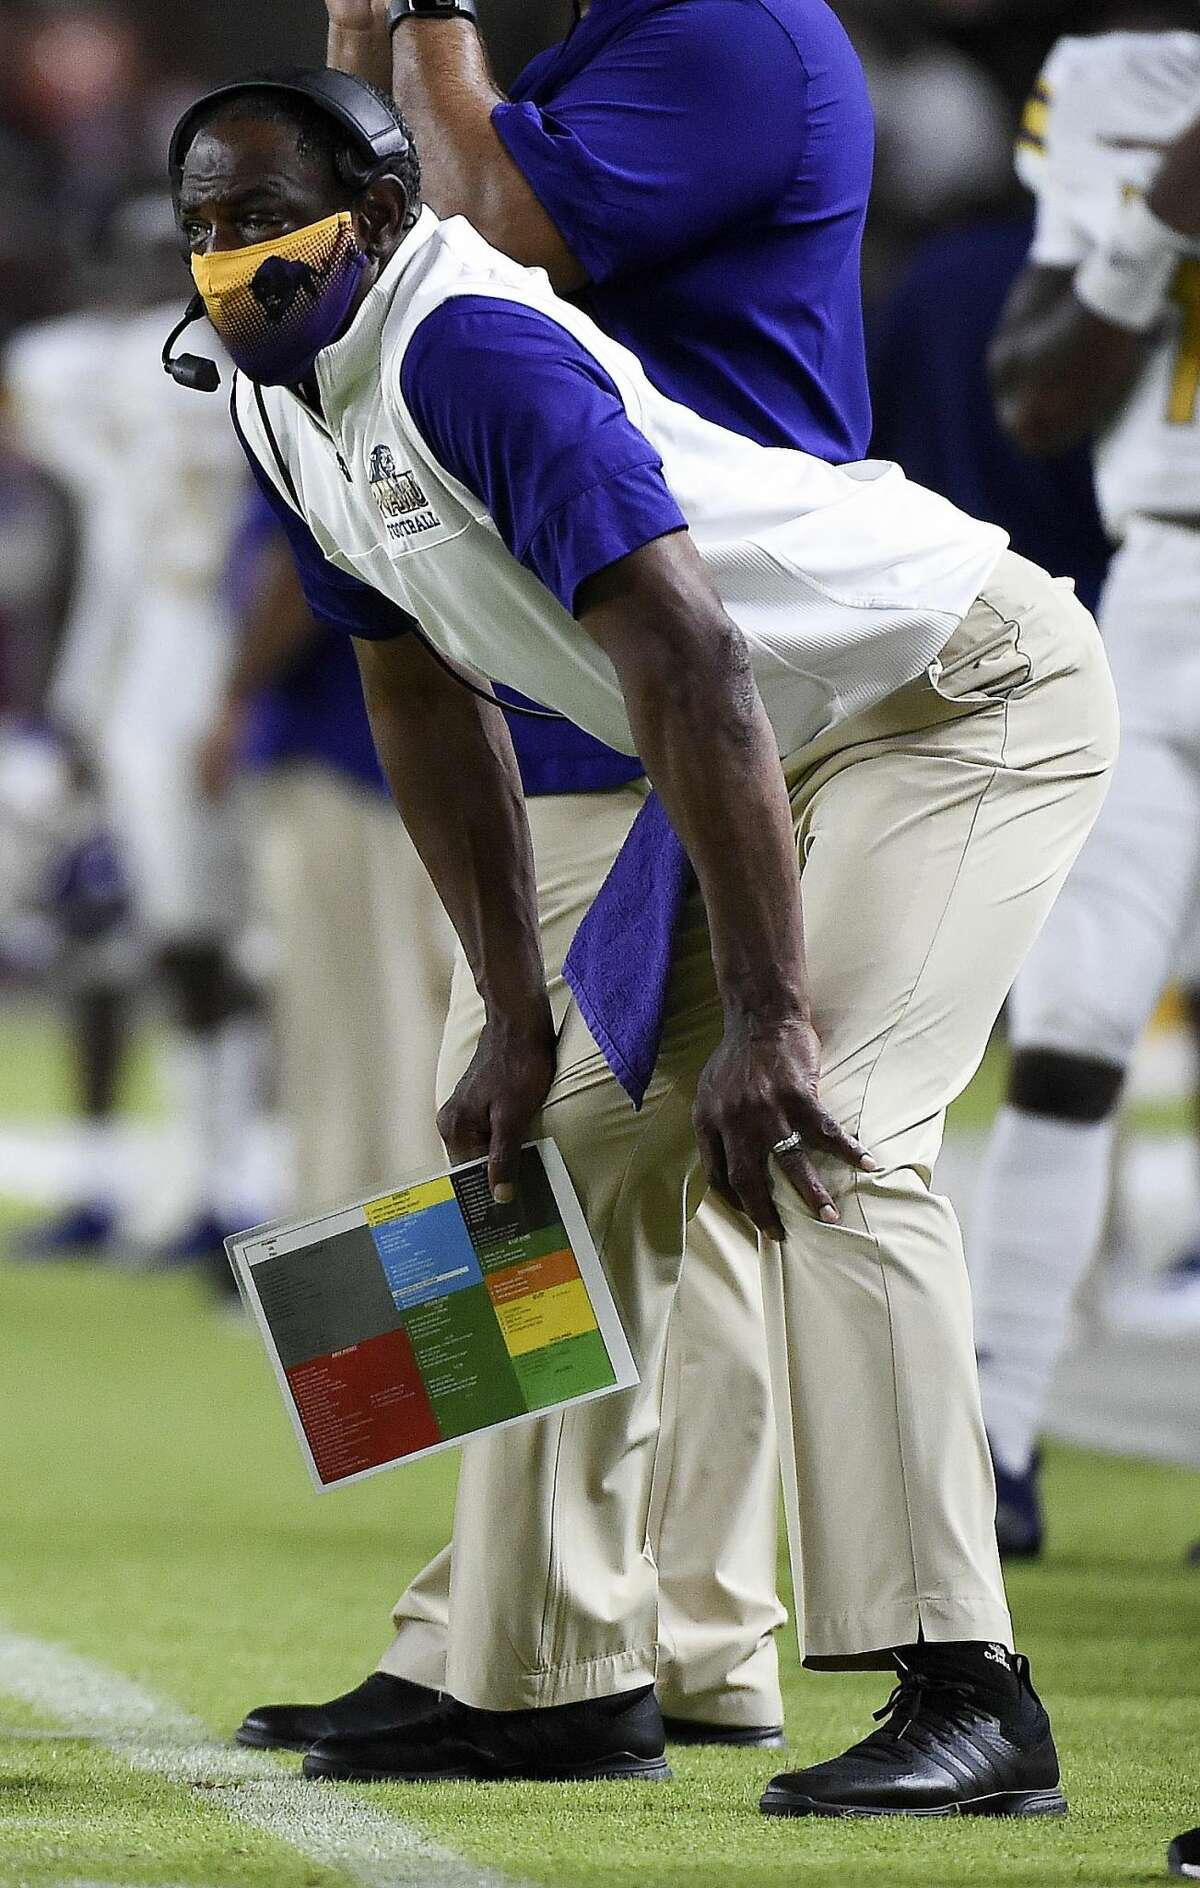 Prairie View A&M head coach Eric Dooley watches from the sidelines during the first half of an NCAA college football game against Texas Southern , Saturday. Sept. 4, 2021, in Houston.